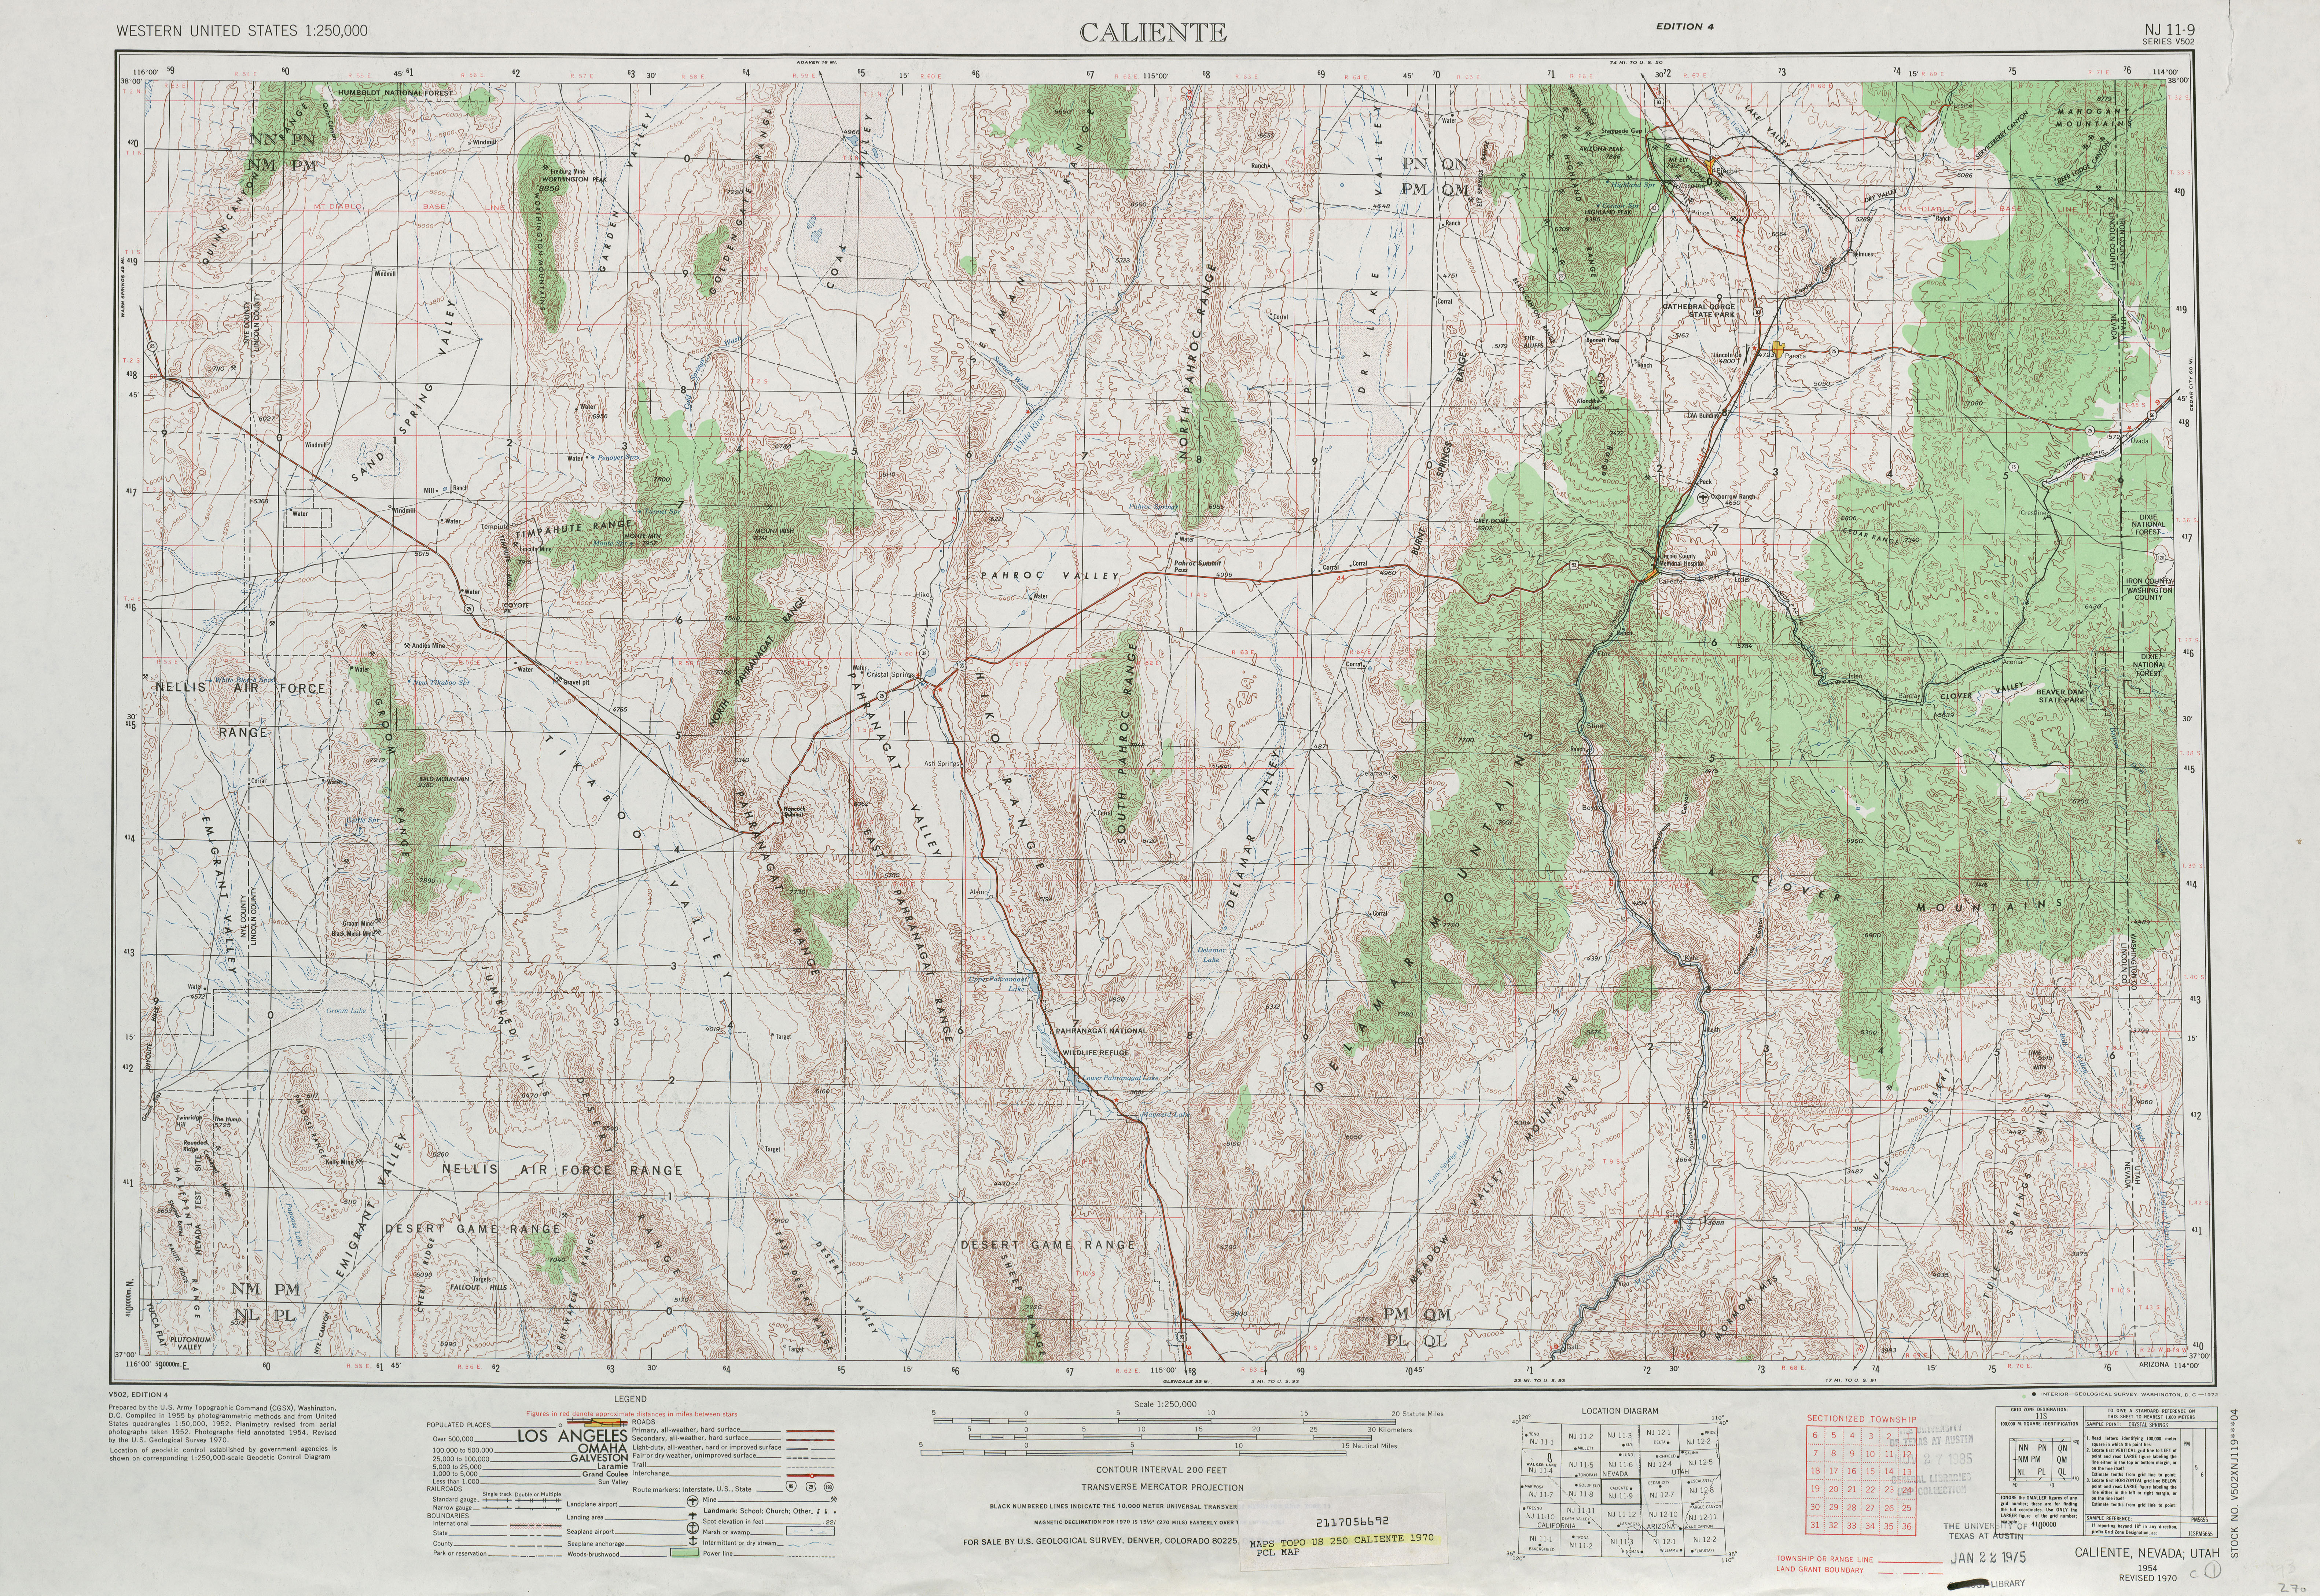 Caliente Topographic Map Sheet, United States 1970